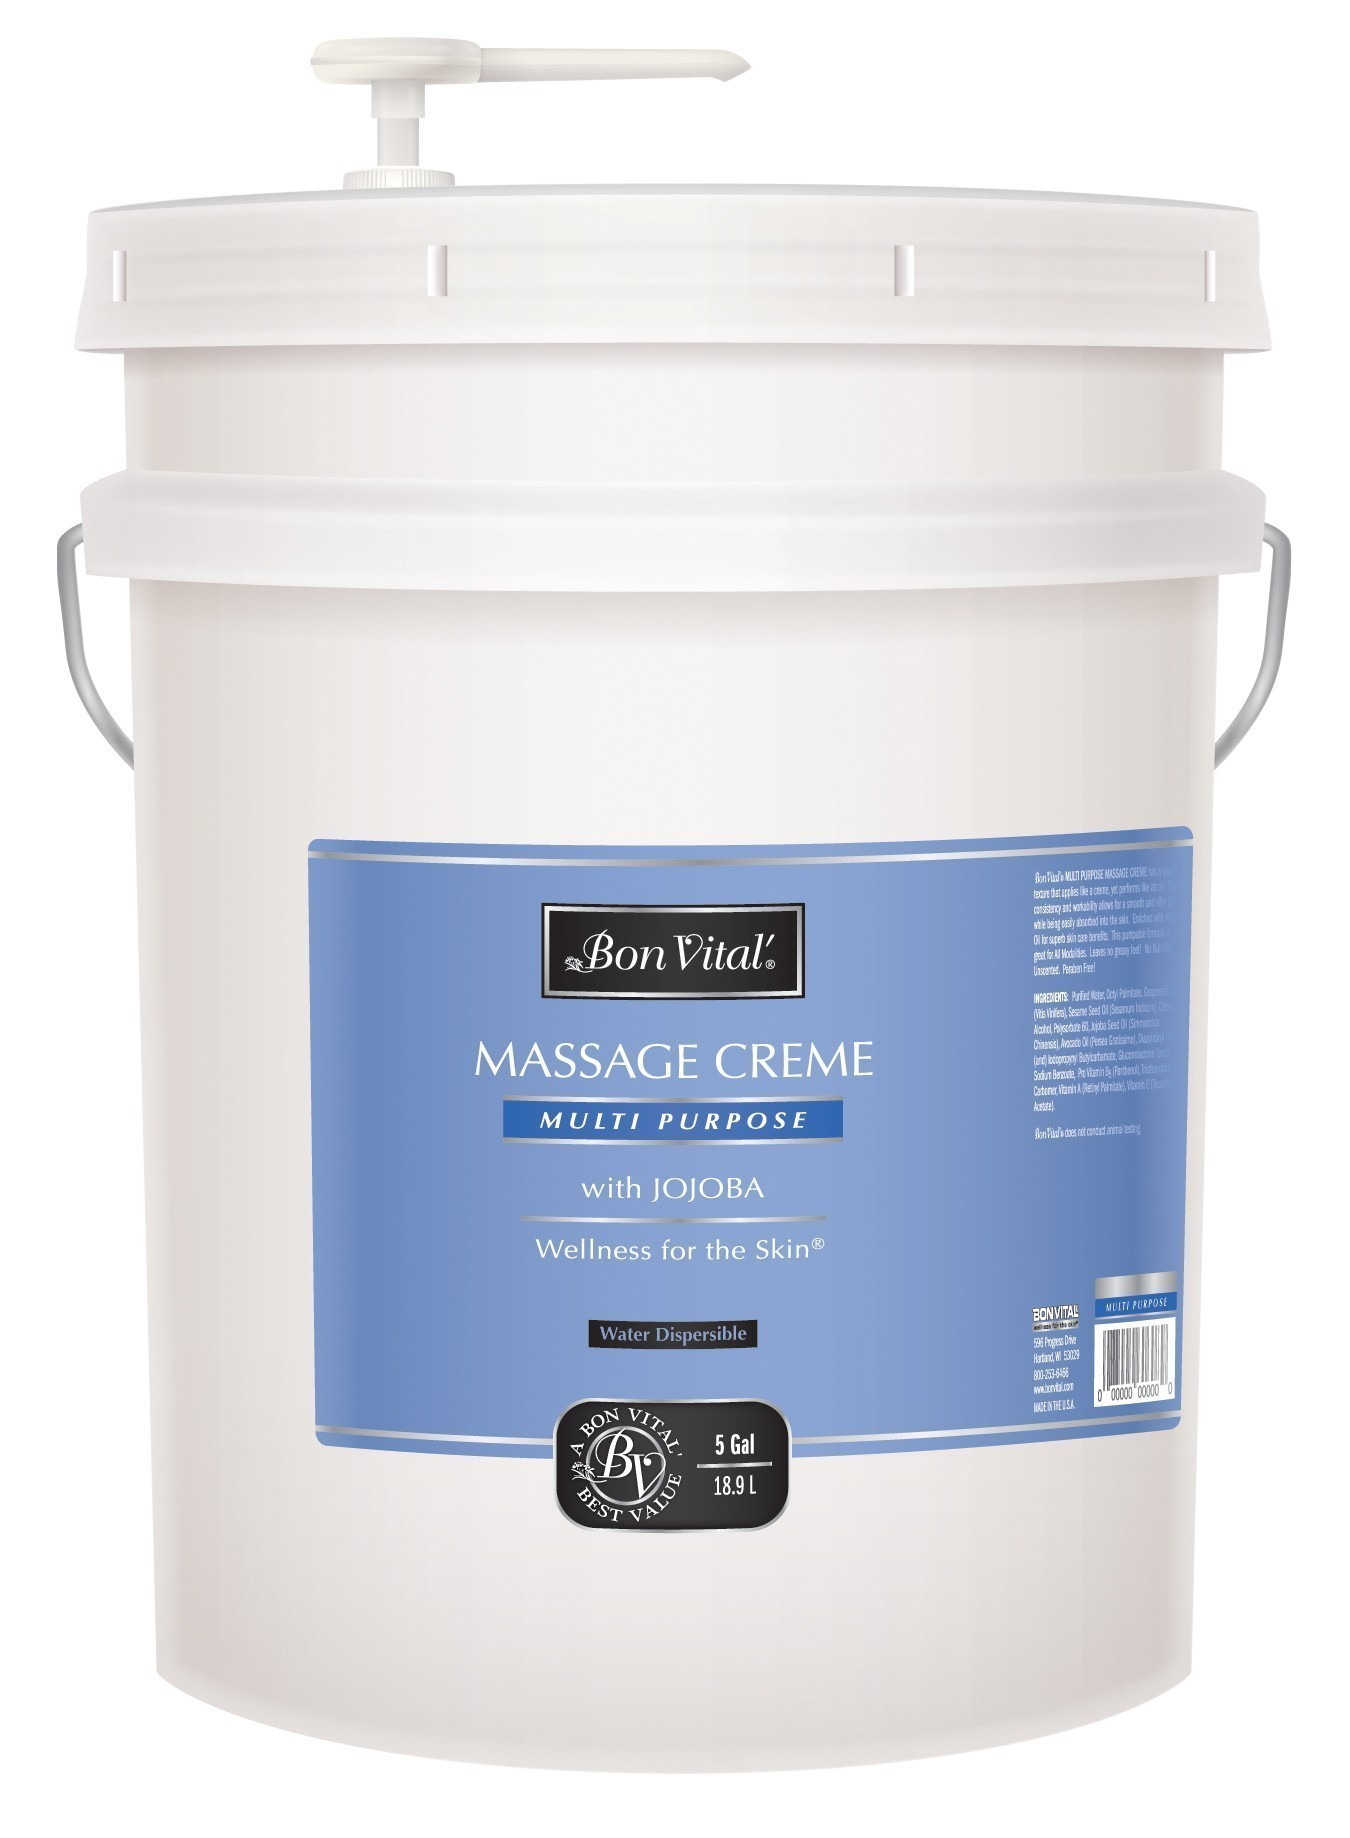 Bon Vital Multi Purpose Massage Creme 5 Gallon Pail